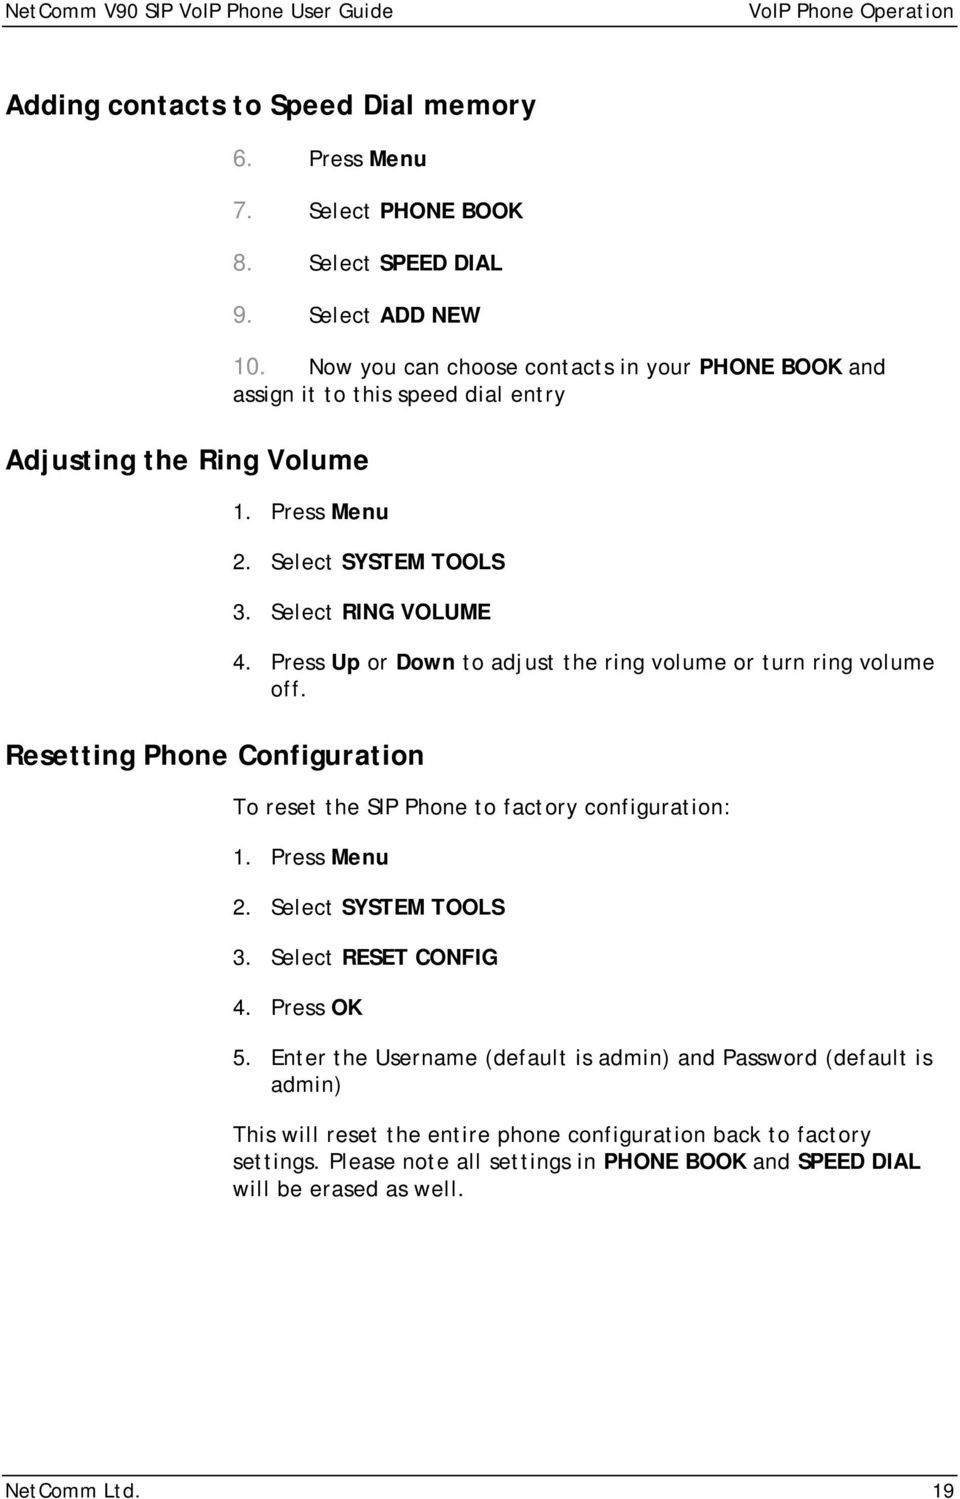 Press Up or Down to adjust the ring volume or turn ring volume off. To reset the SIP Phone to factory configuration: 1. Press Menu 2. Select SYSTEM TOOLS 3. Select RESET CONFIG 4. Press OK 5.